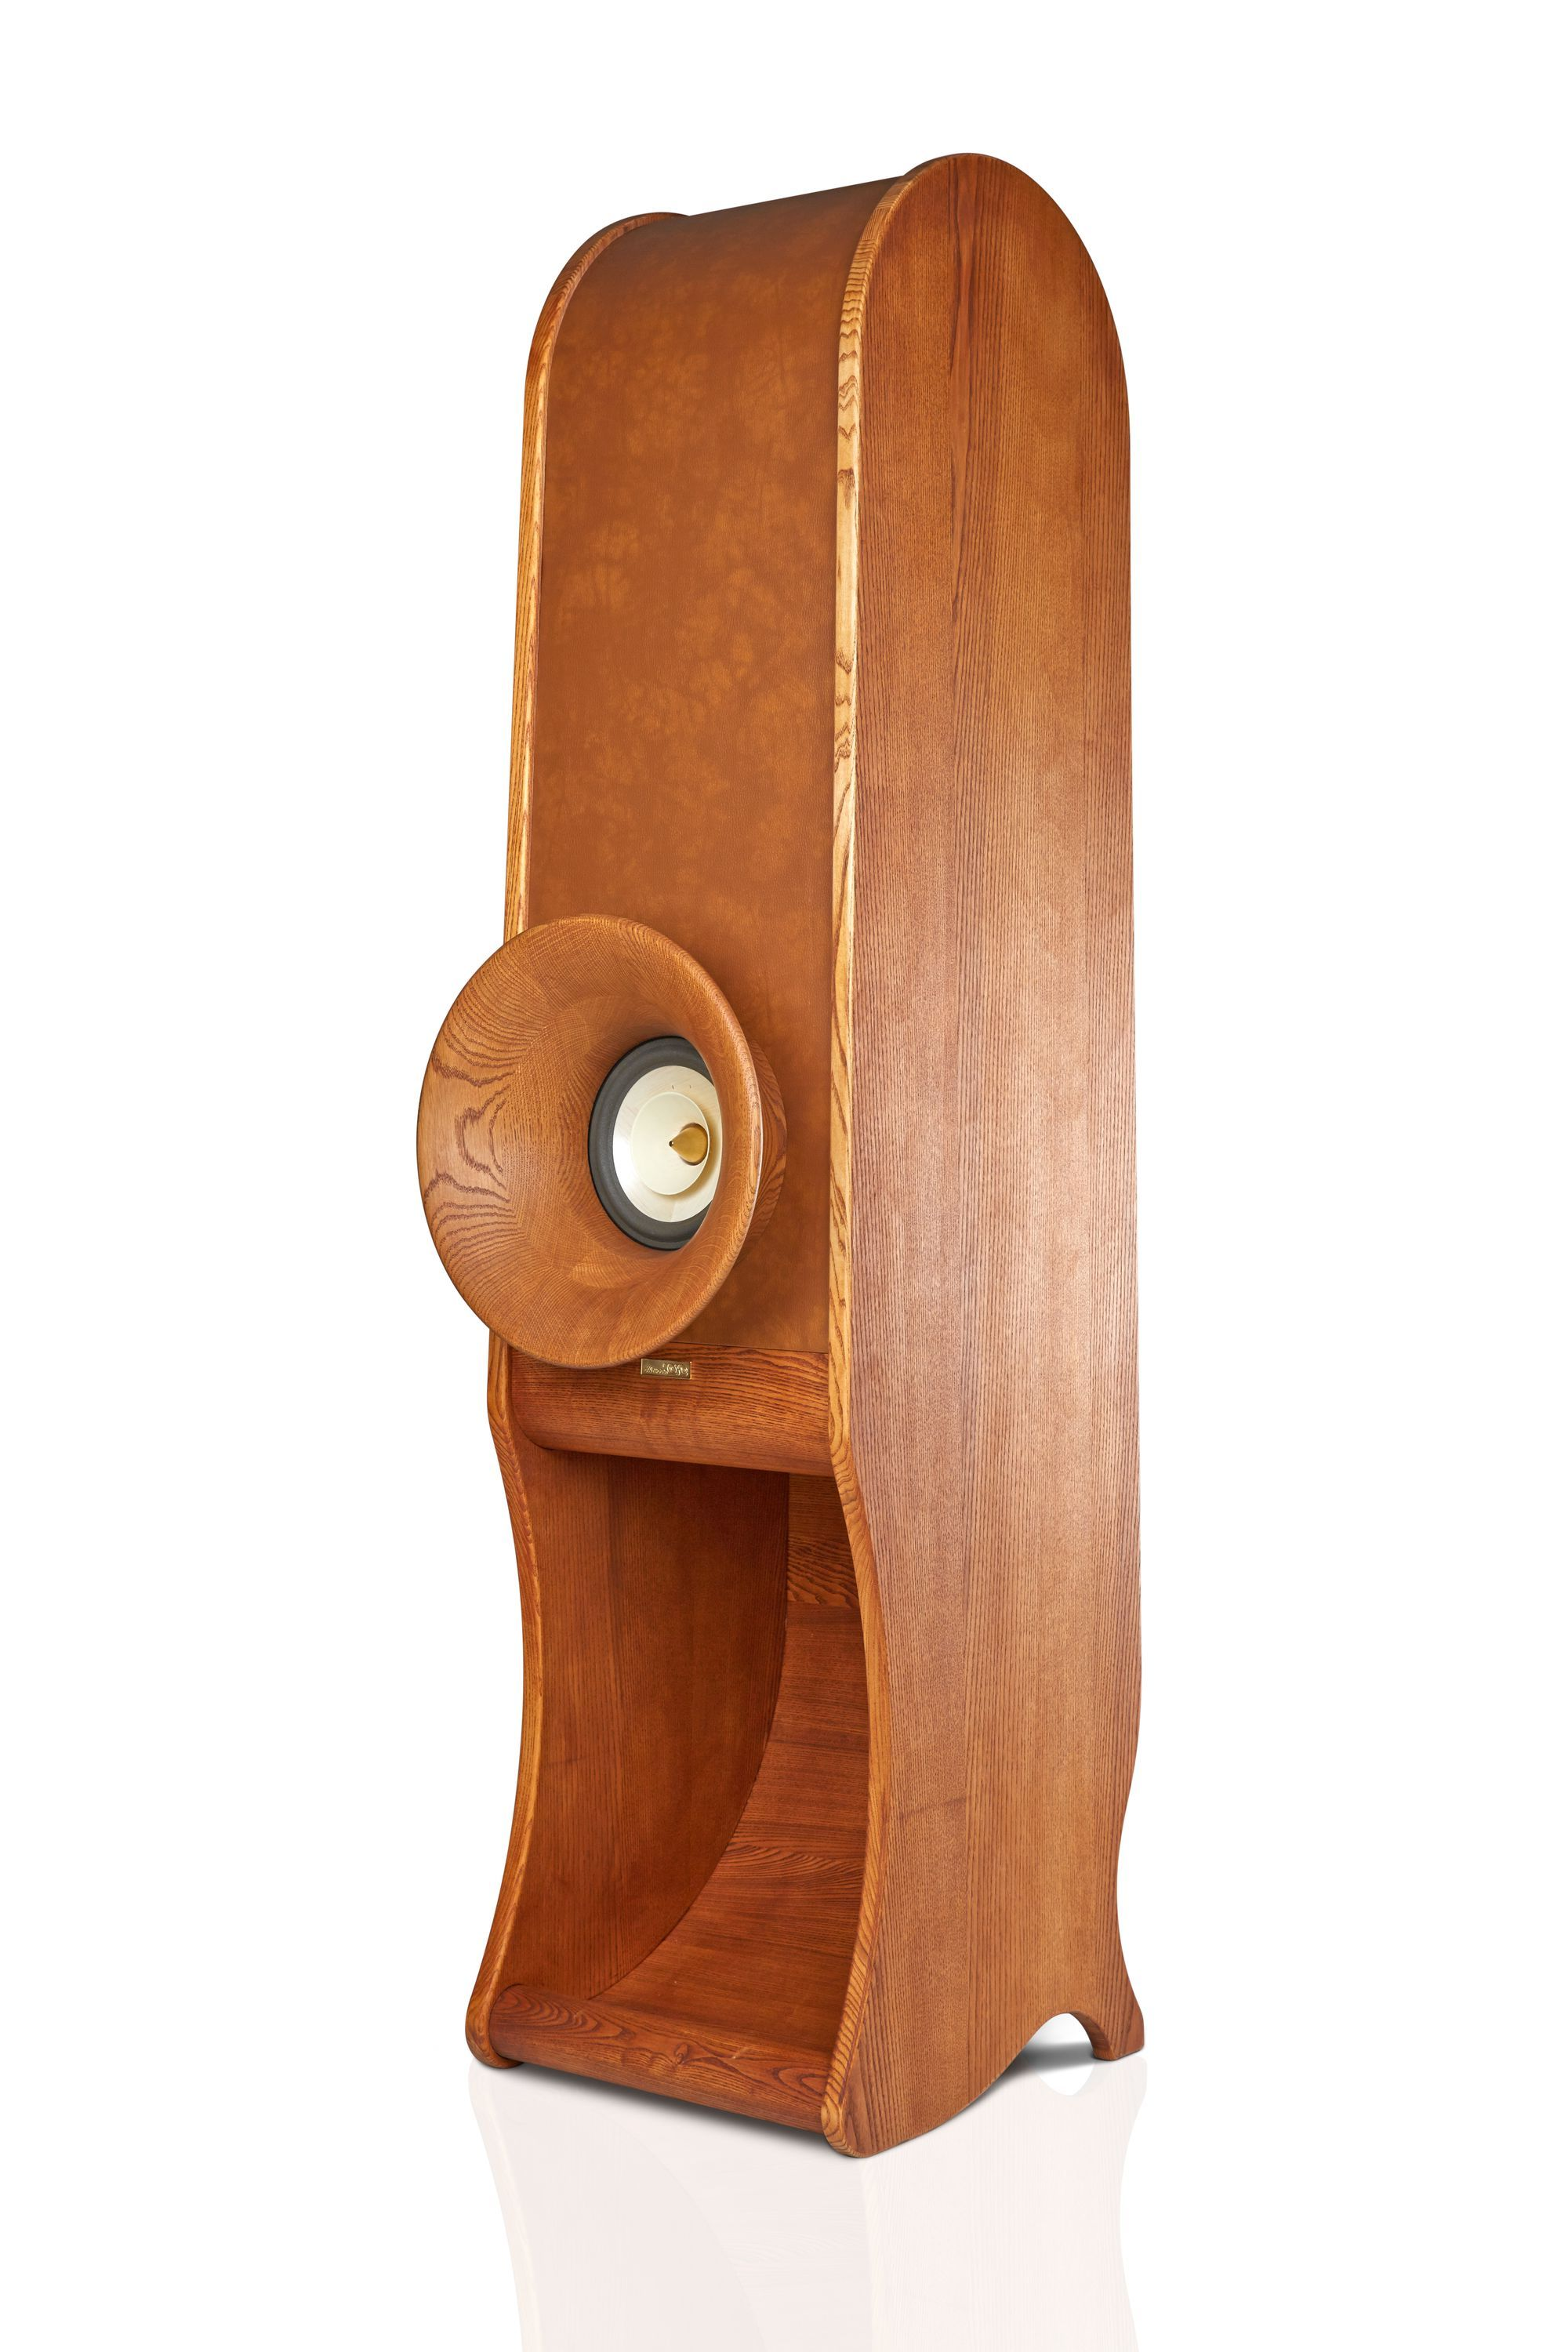 RDacoustic High-end Evolution speakers Voxativ AC1.8 speaker driver wooden cone